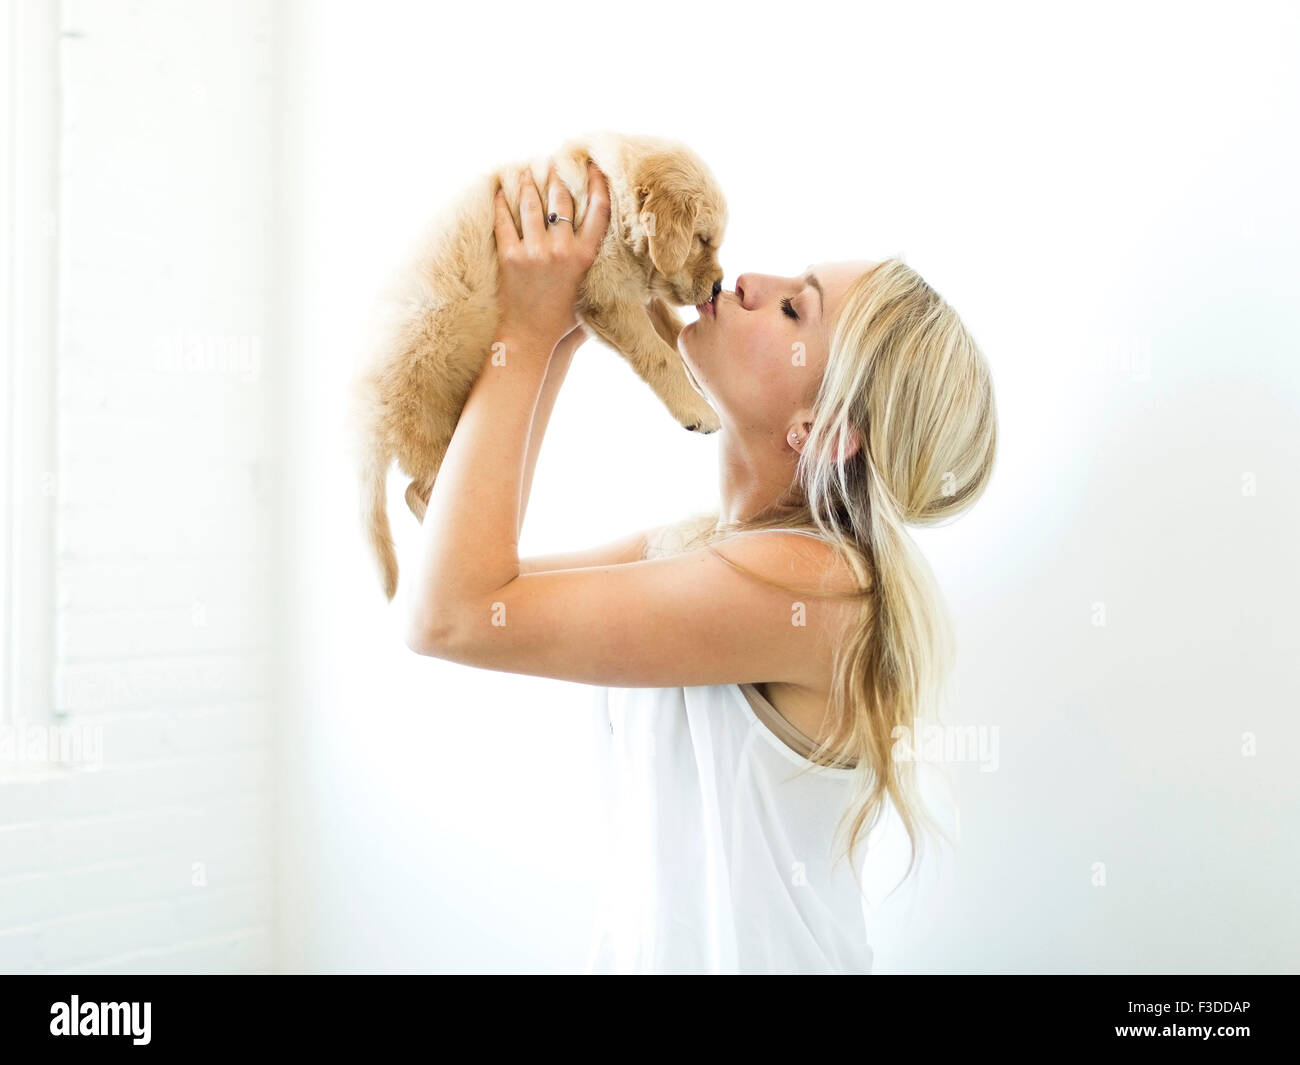 Studio shot of owner kissing Golden Retriever puppy - Stock Image